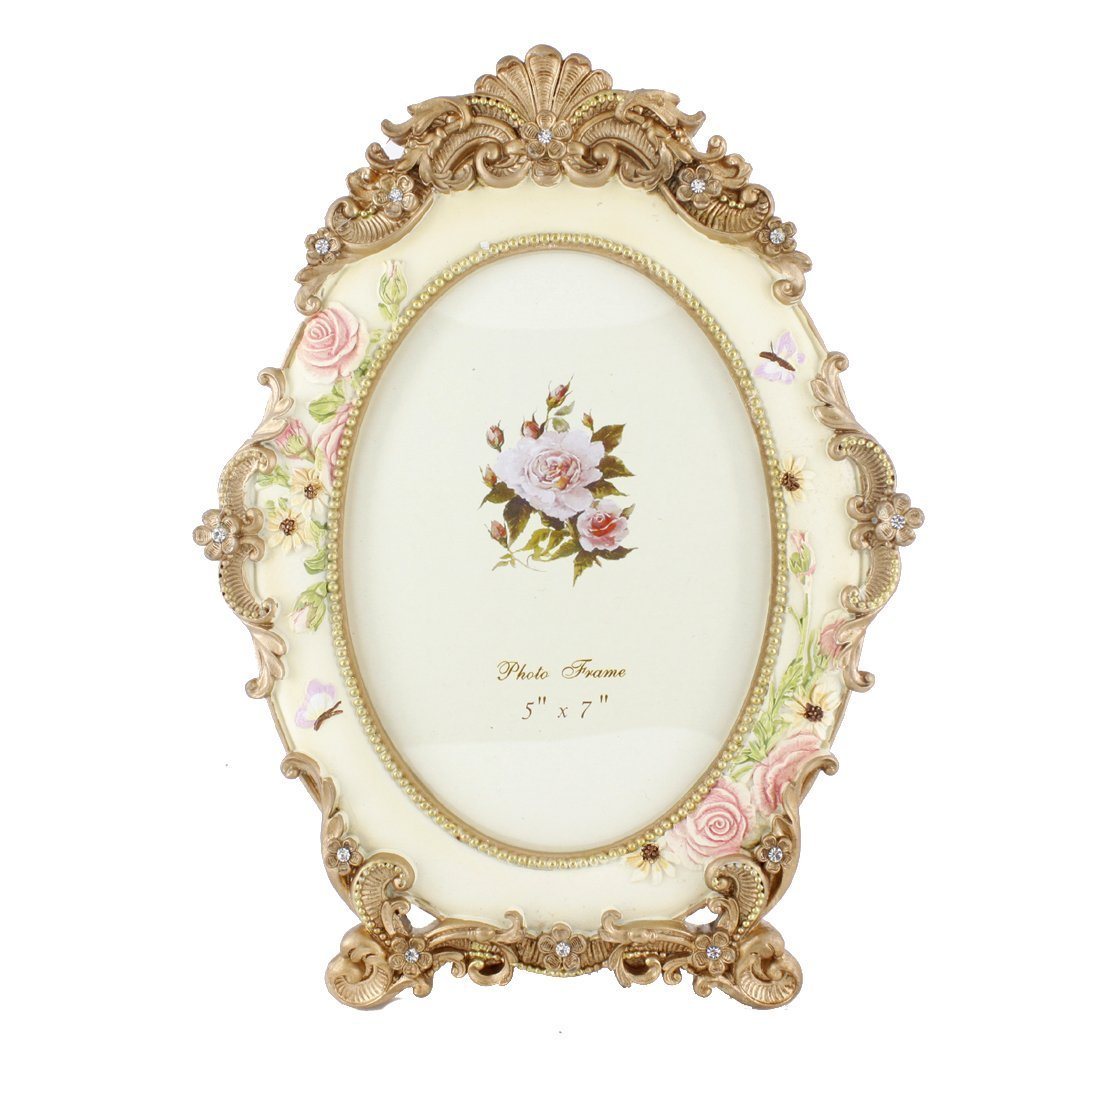 5 by 7 inches oval white crystal victorian flower family picture 5 by 7 inches oval white crystal victorian flower family picture frame 5 x 7 inch jeuxipadfo Image collections